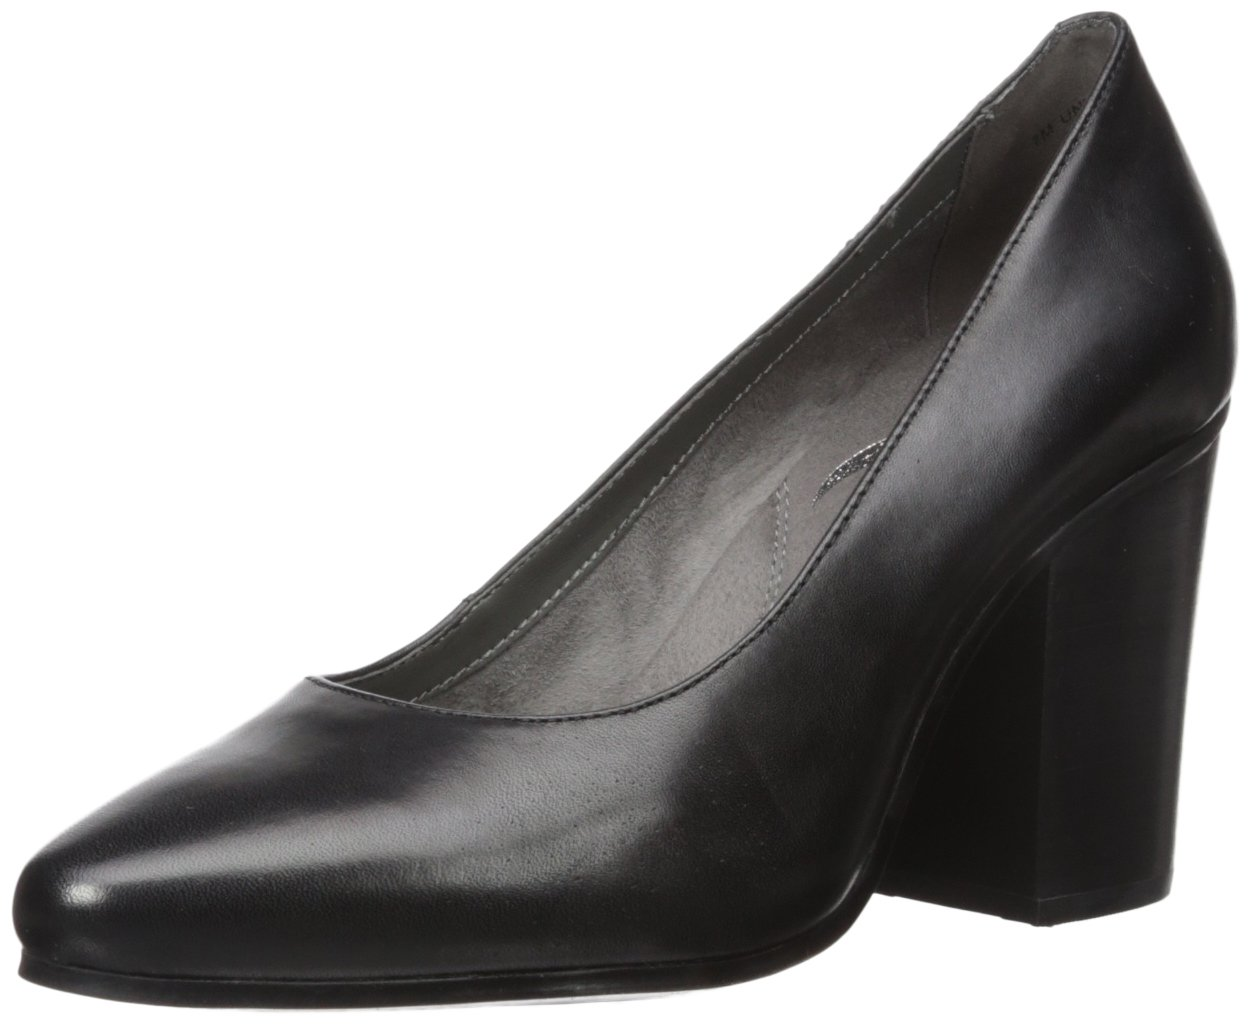 Aerosoles Women's Union Square Pump B073RPWZ3B 6.5 B(M) US|Black Leather